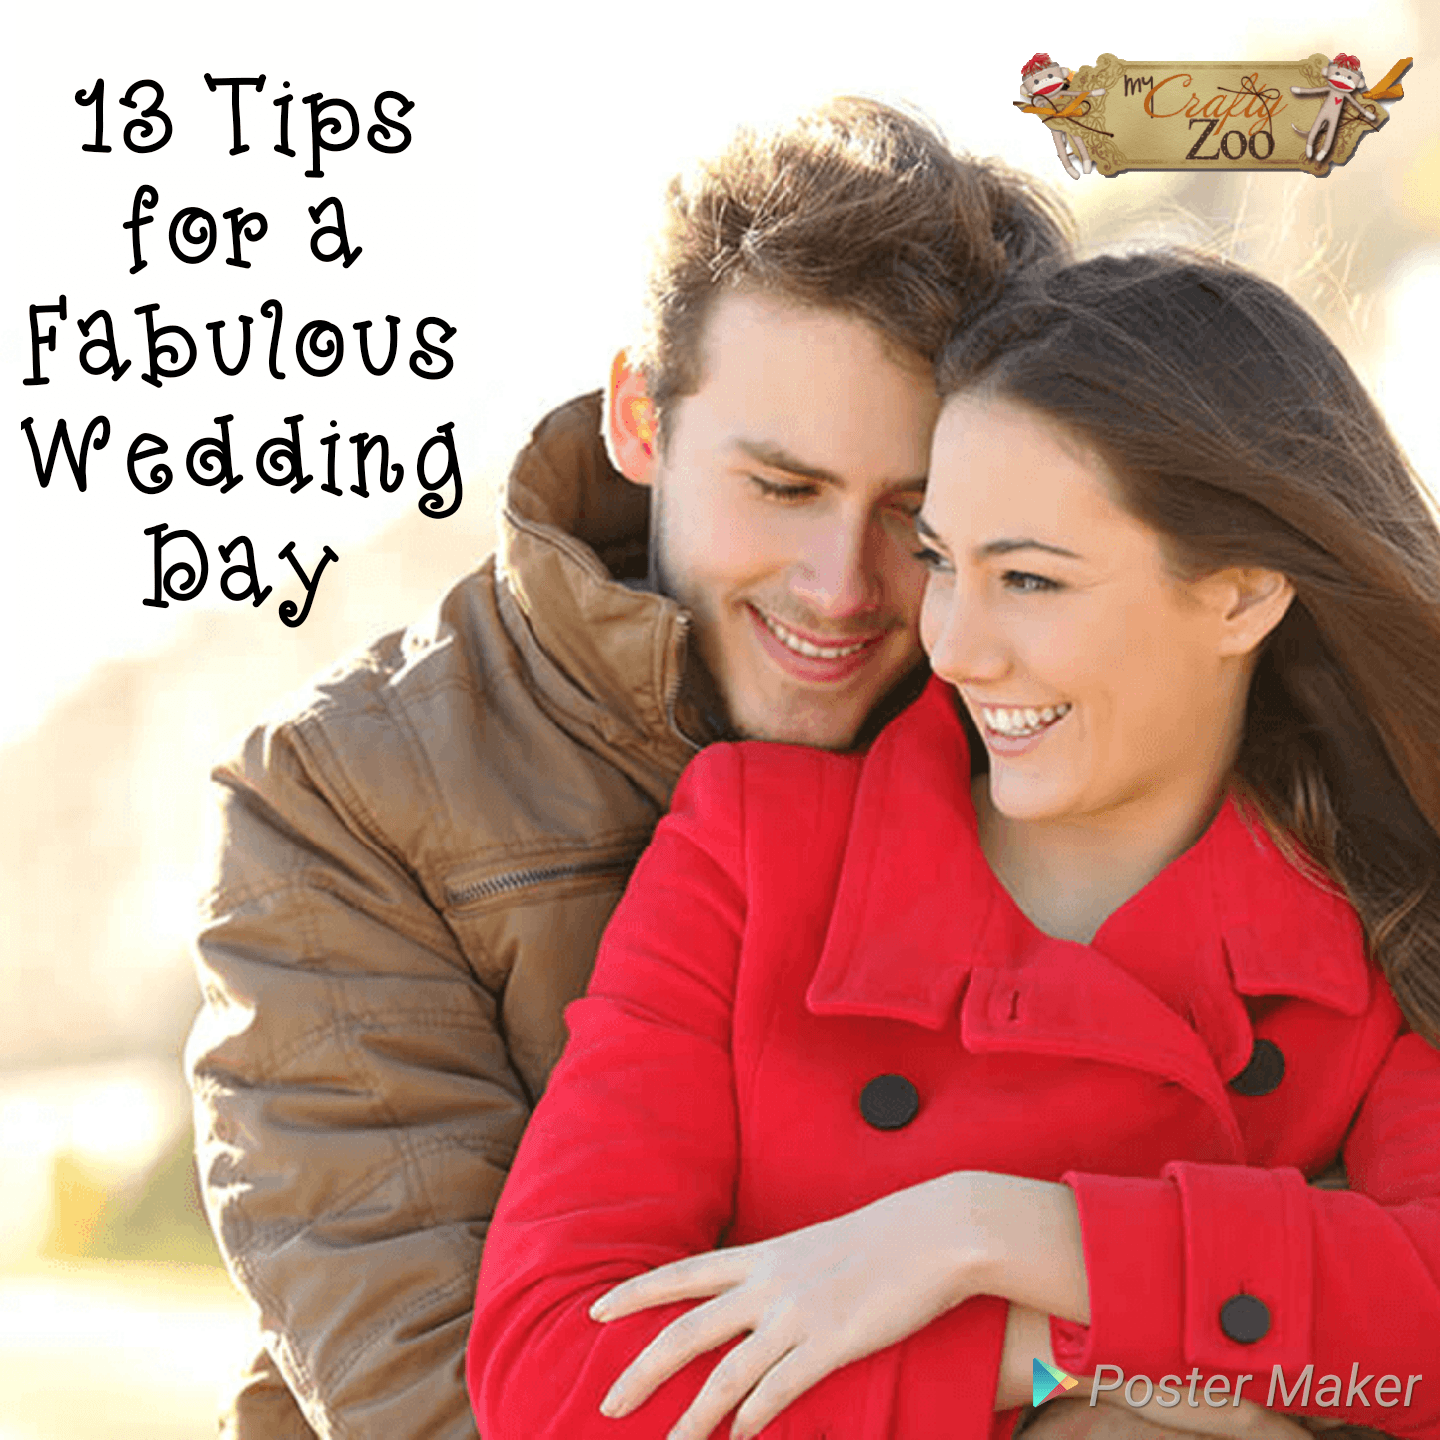 Wedding Day: 13 Tips For The Perfect Day